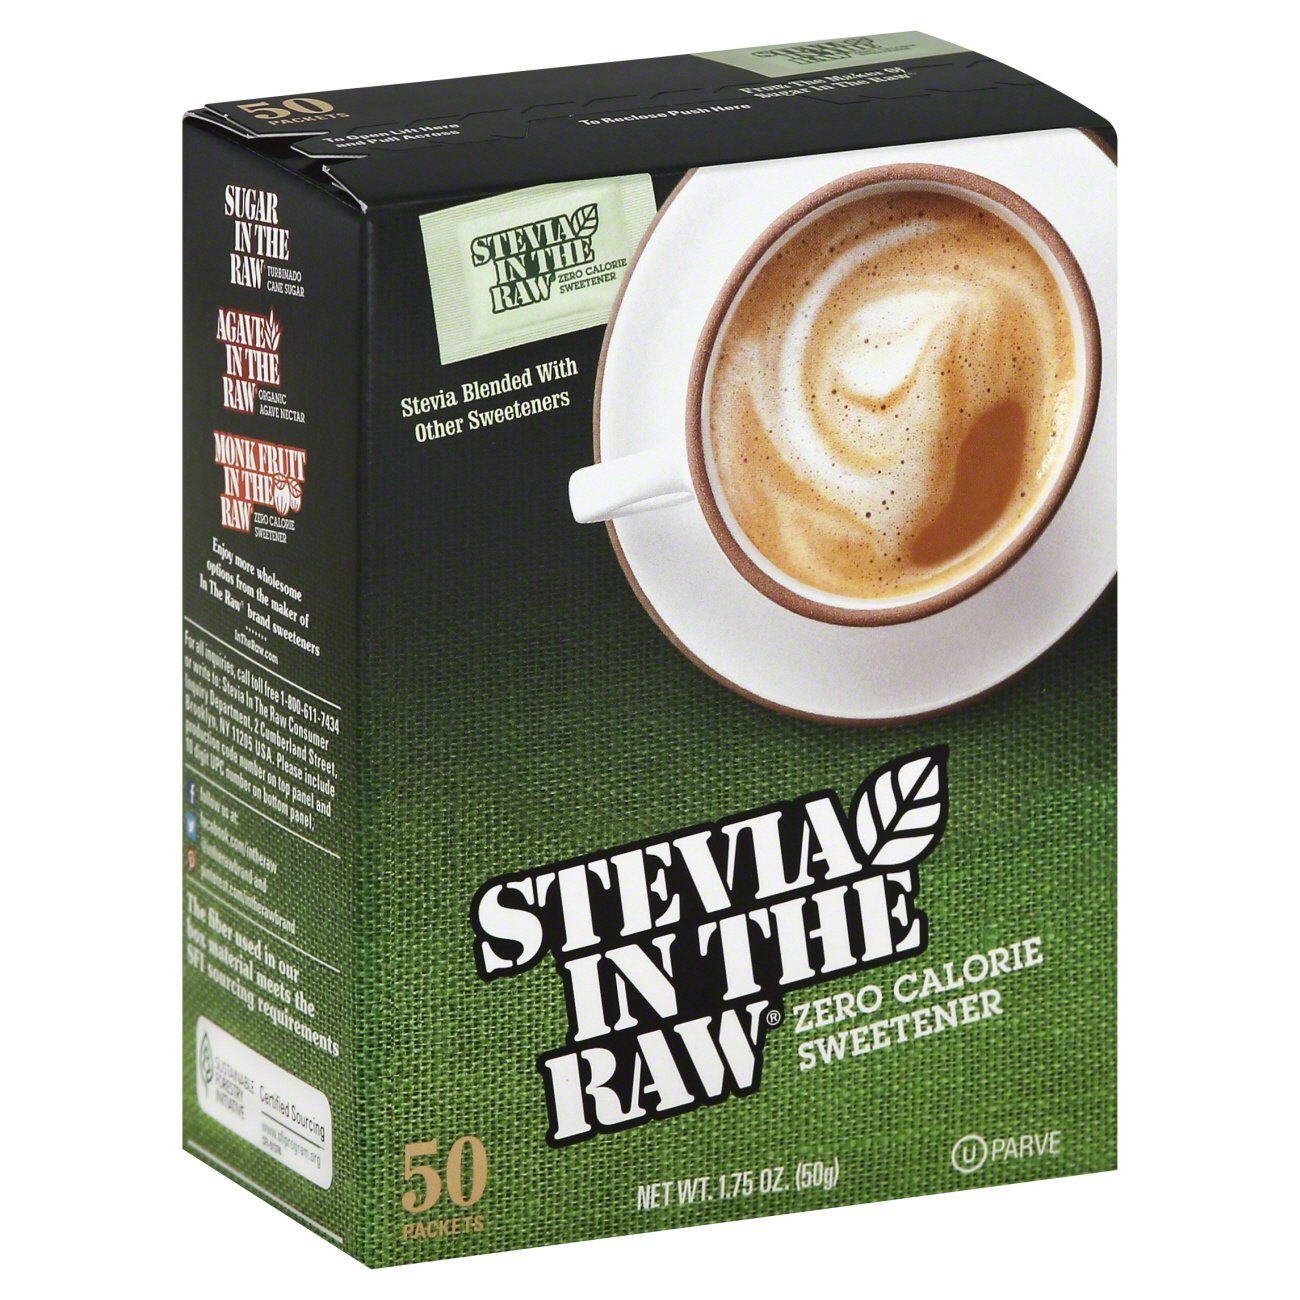 Stevia in the Raw Zero Calorie Sweetener Packets Shop Sugar and